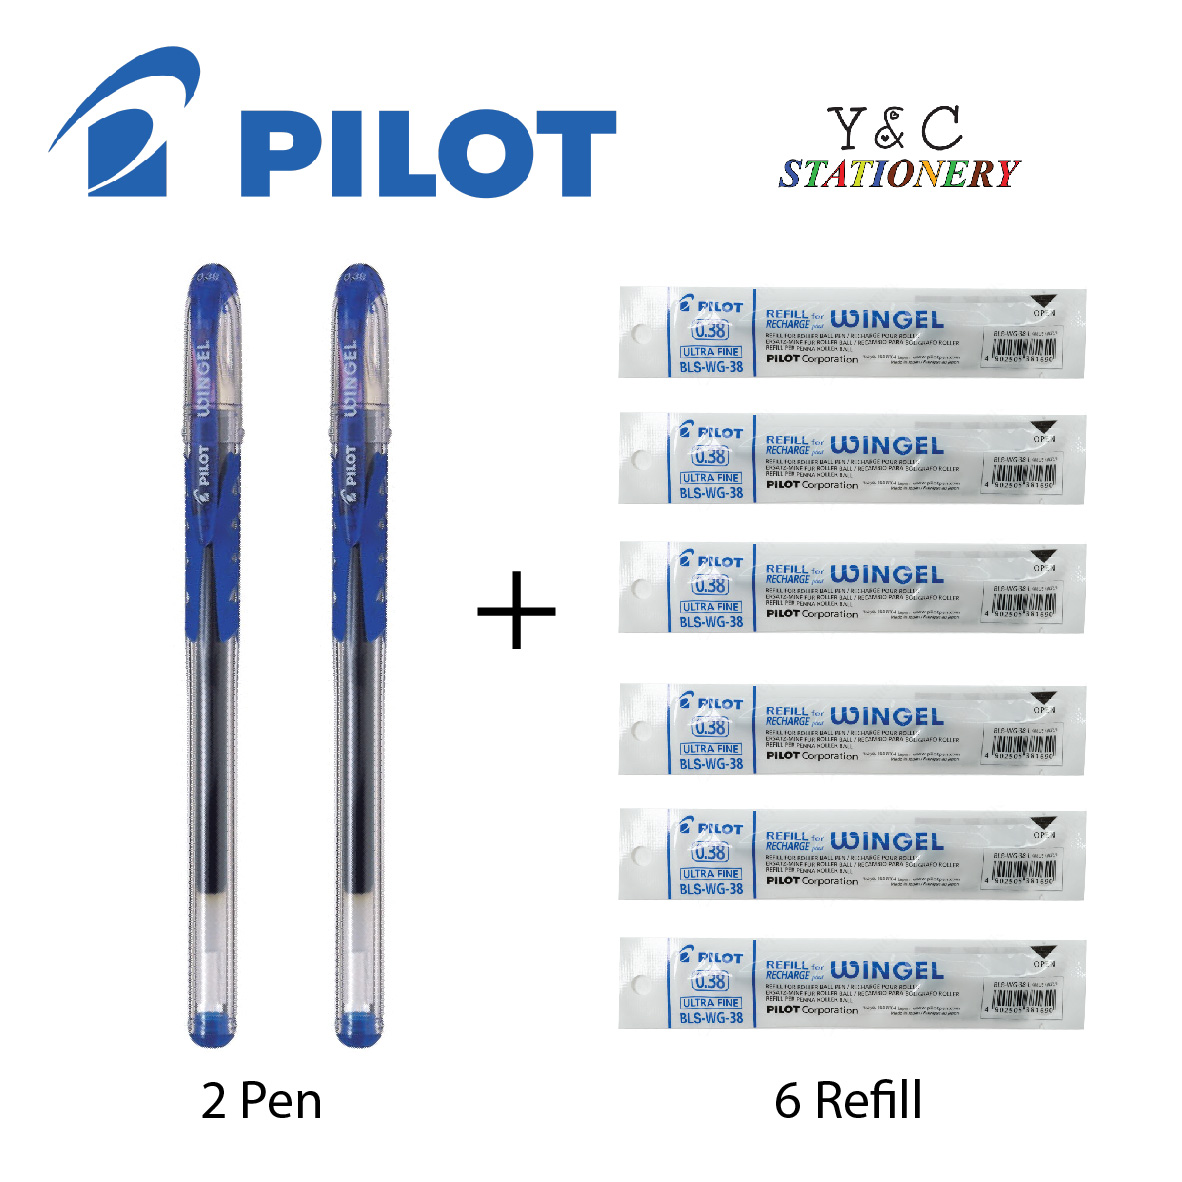 Pilot Wingel 0.38 Blue Pen and Refill Bundle